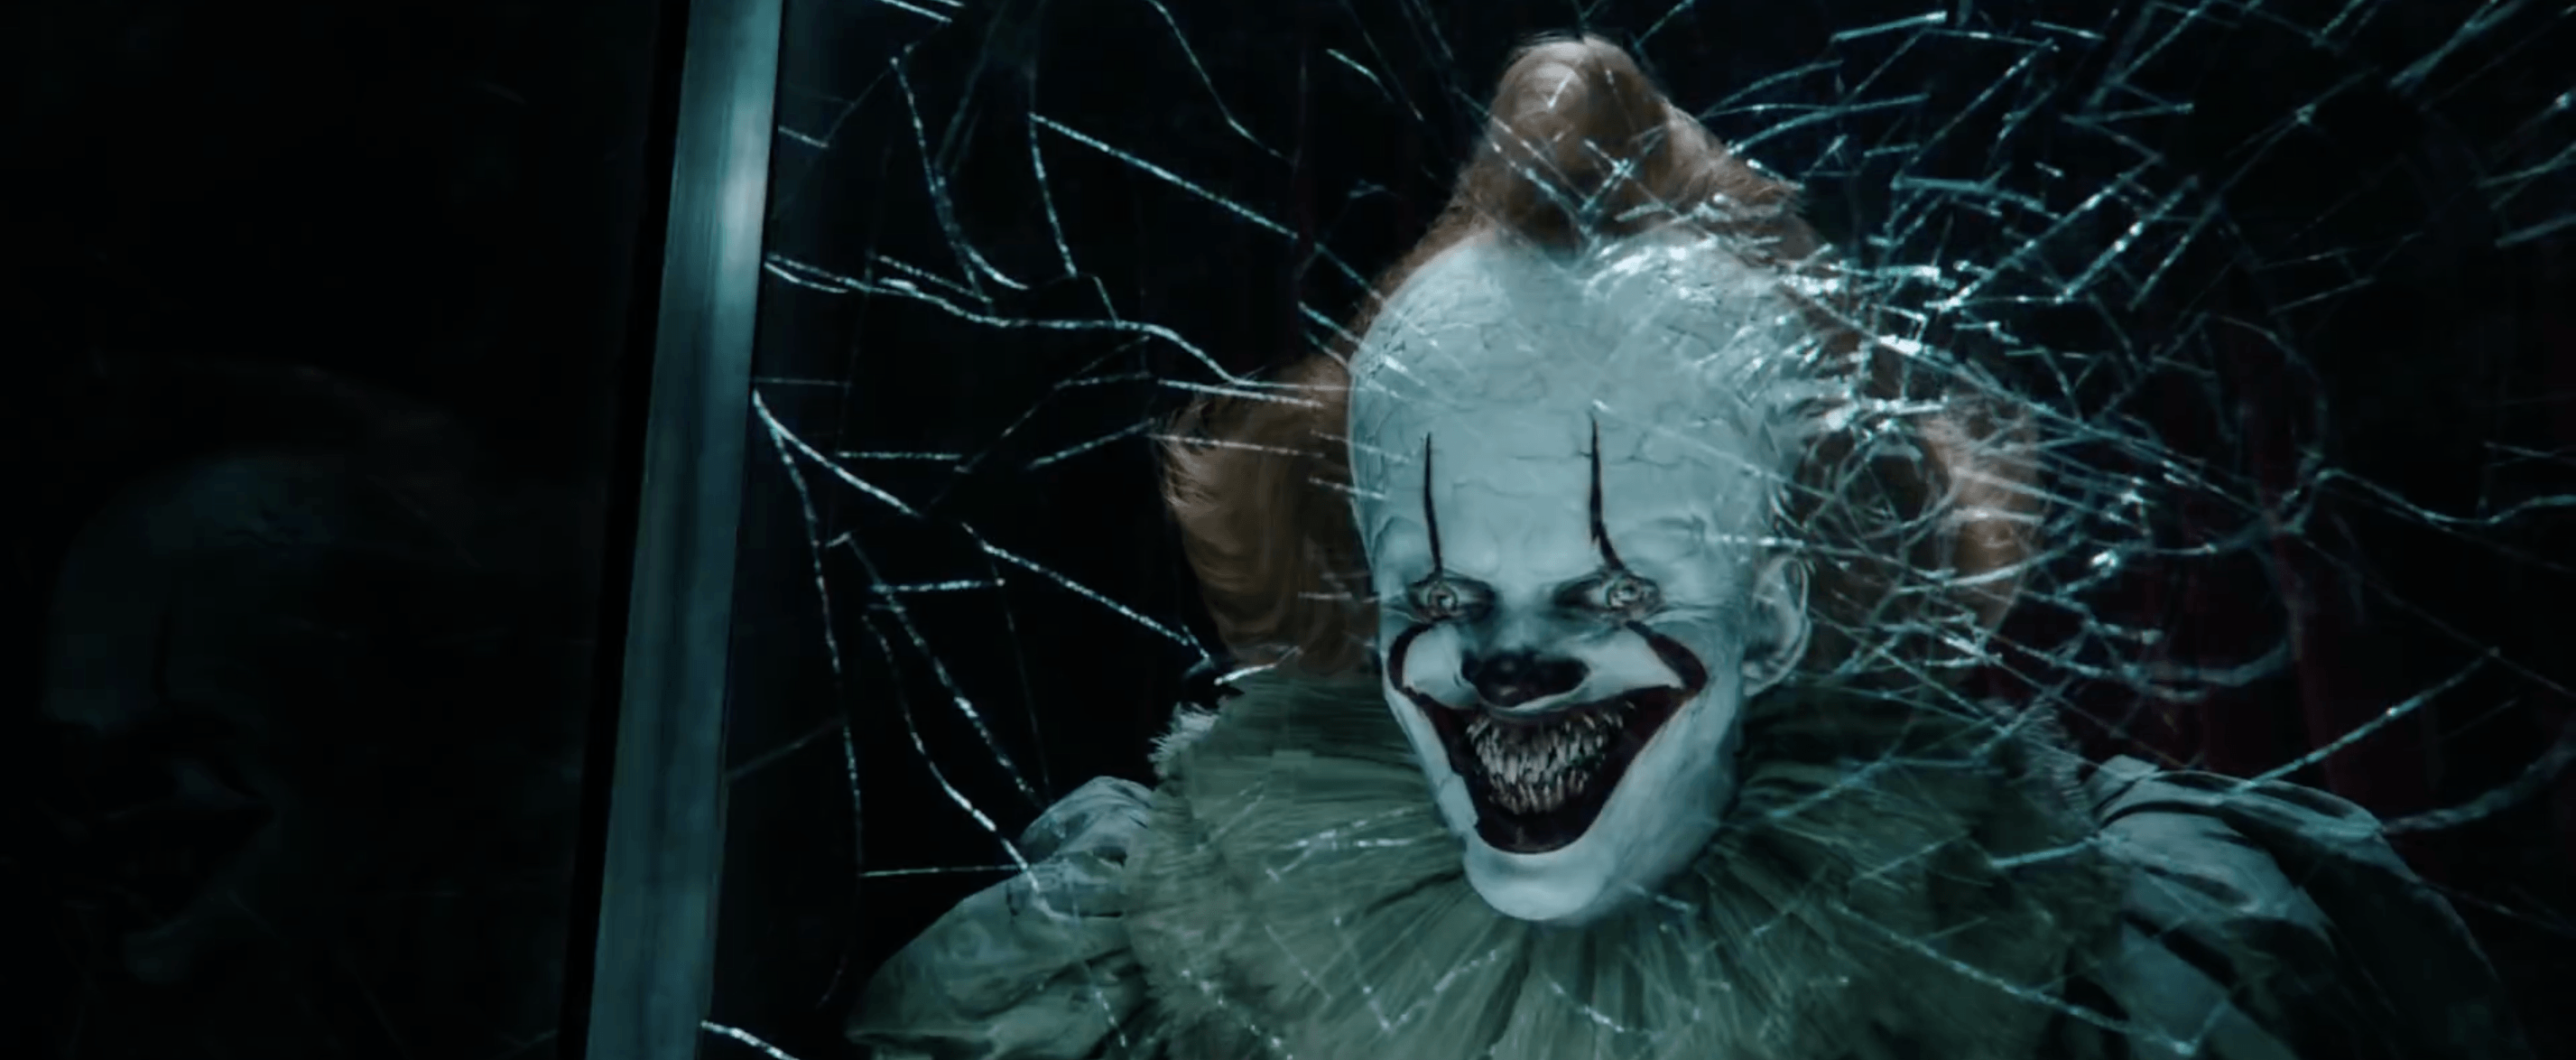 It Chapter 2 trailer features key scenes teased at Comic